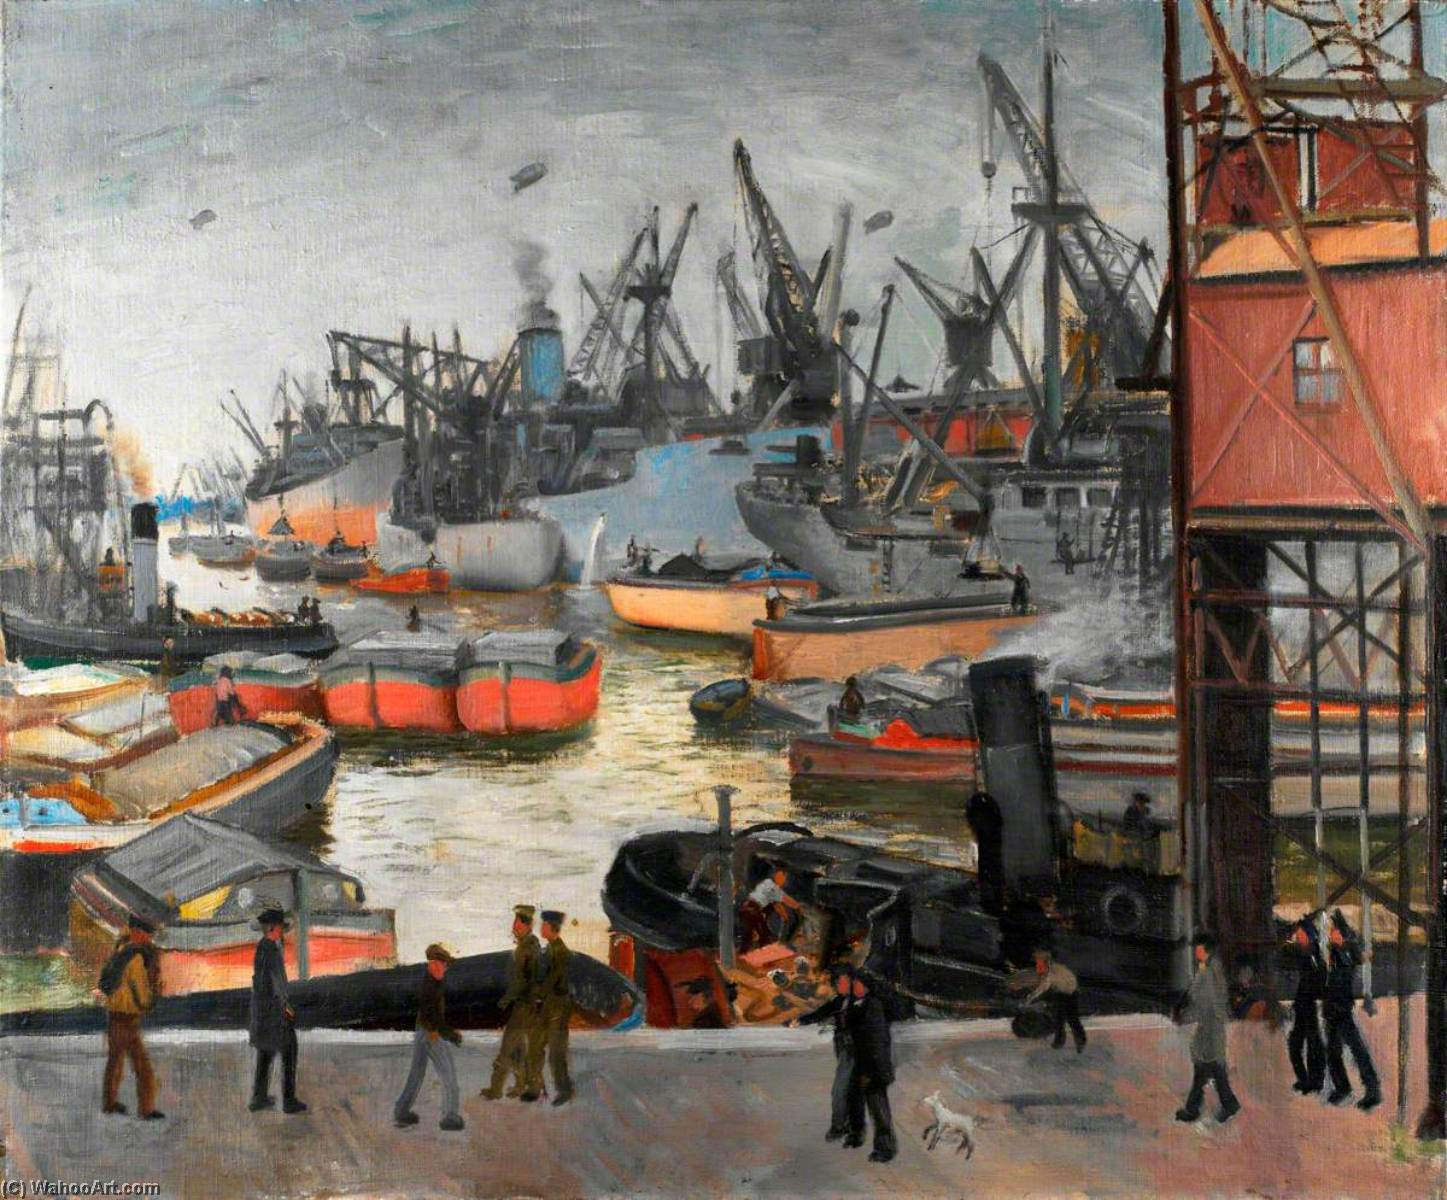 Activity at a Hull Dock, 1943 by Bernard Hailstone | Oil Painting | ArtsDot.com